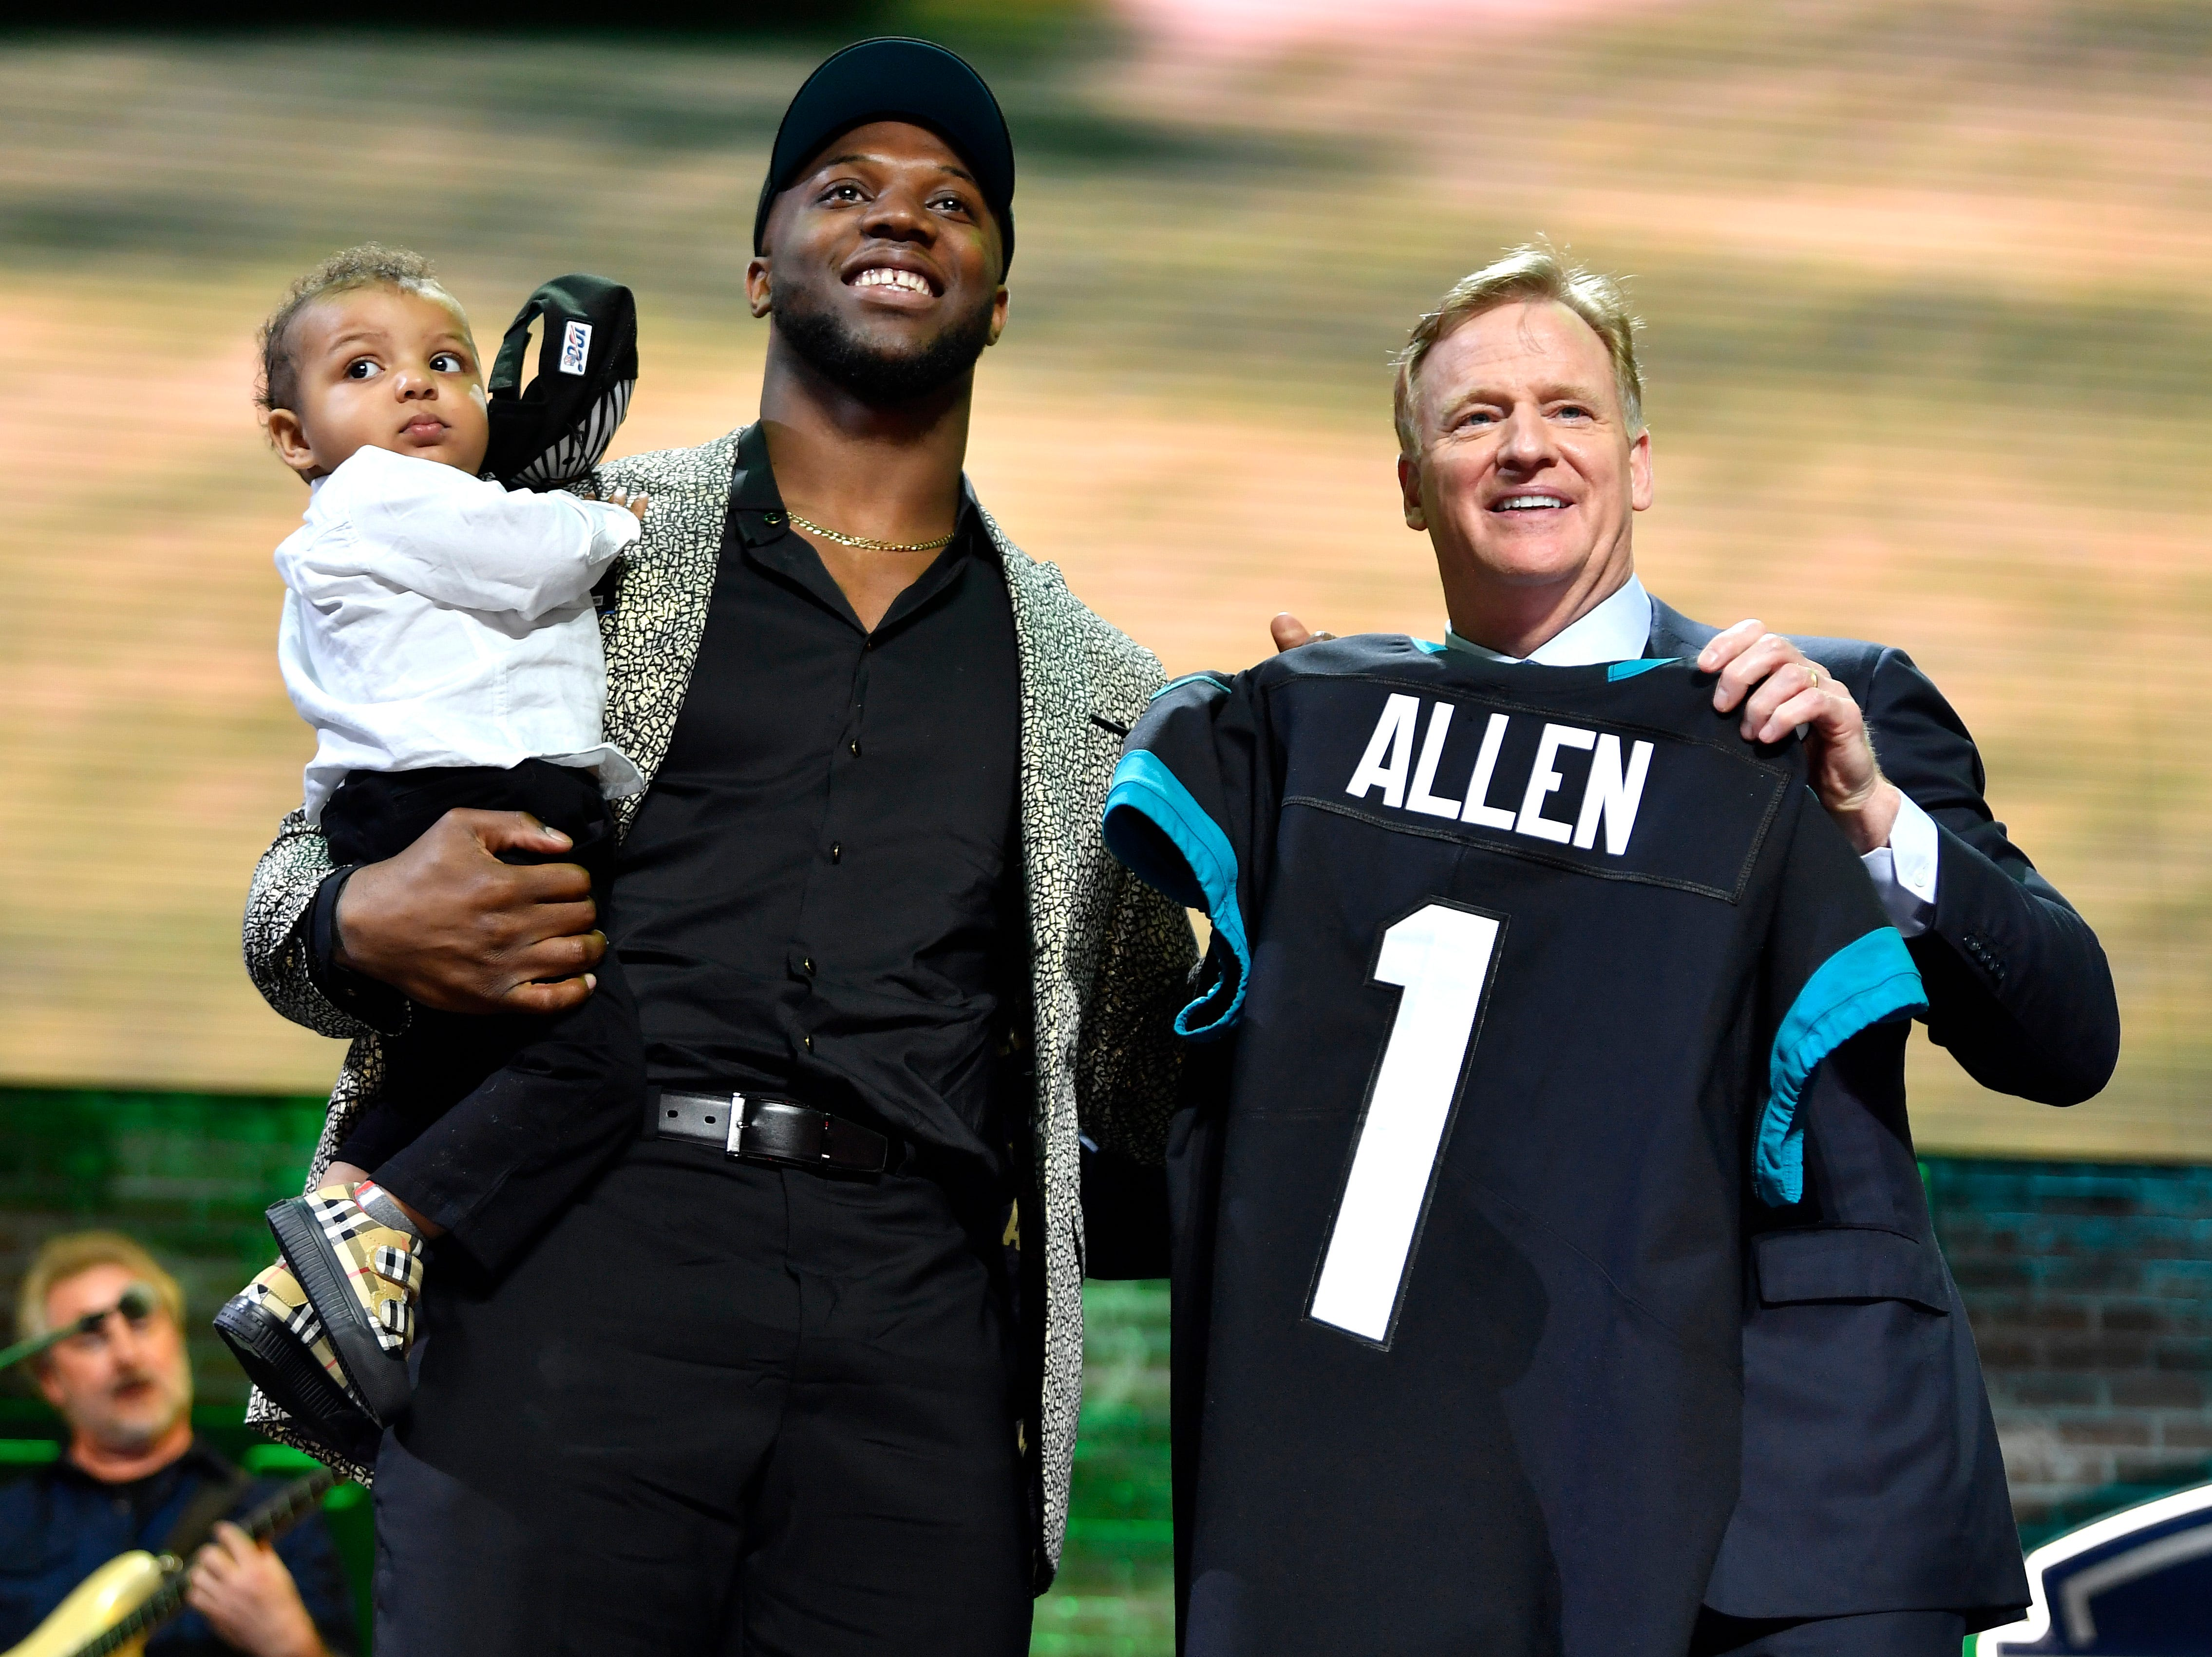 Josh Allen holds his son Wesley after being picked by the Jacksonville Jaguars during the first round of the NFL Draft Thursday, April 25, 2019, in Nashville, Tenn. NFL Commissioner Roger Goodell holds Allen's new jersey